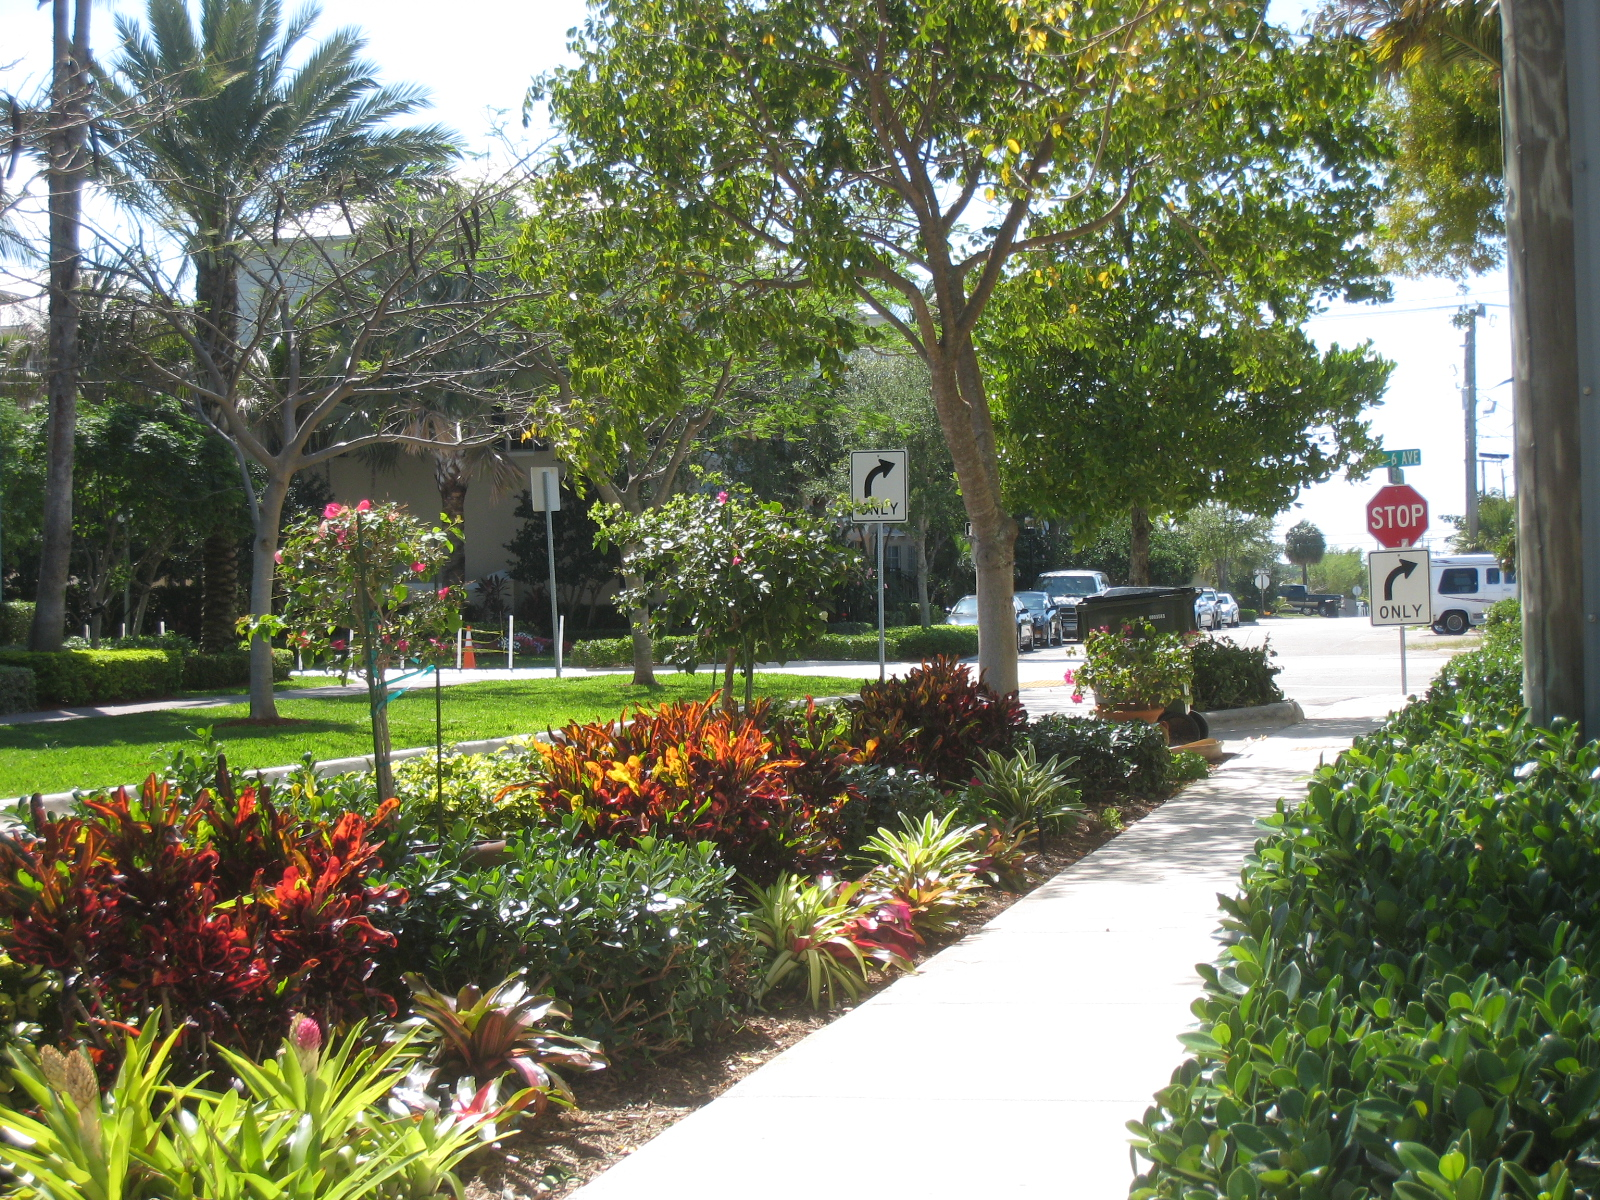 Florida friendly landscaping ifas palm beach extension for Landscaping plants